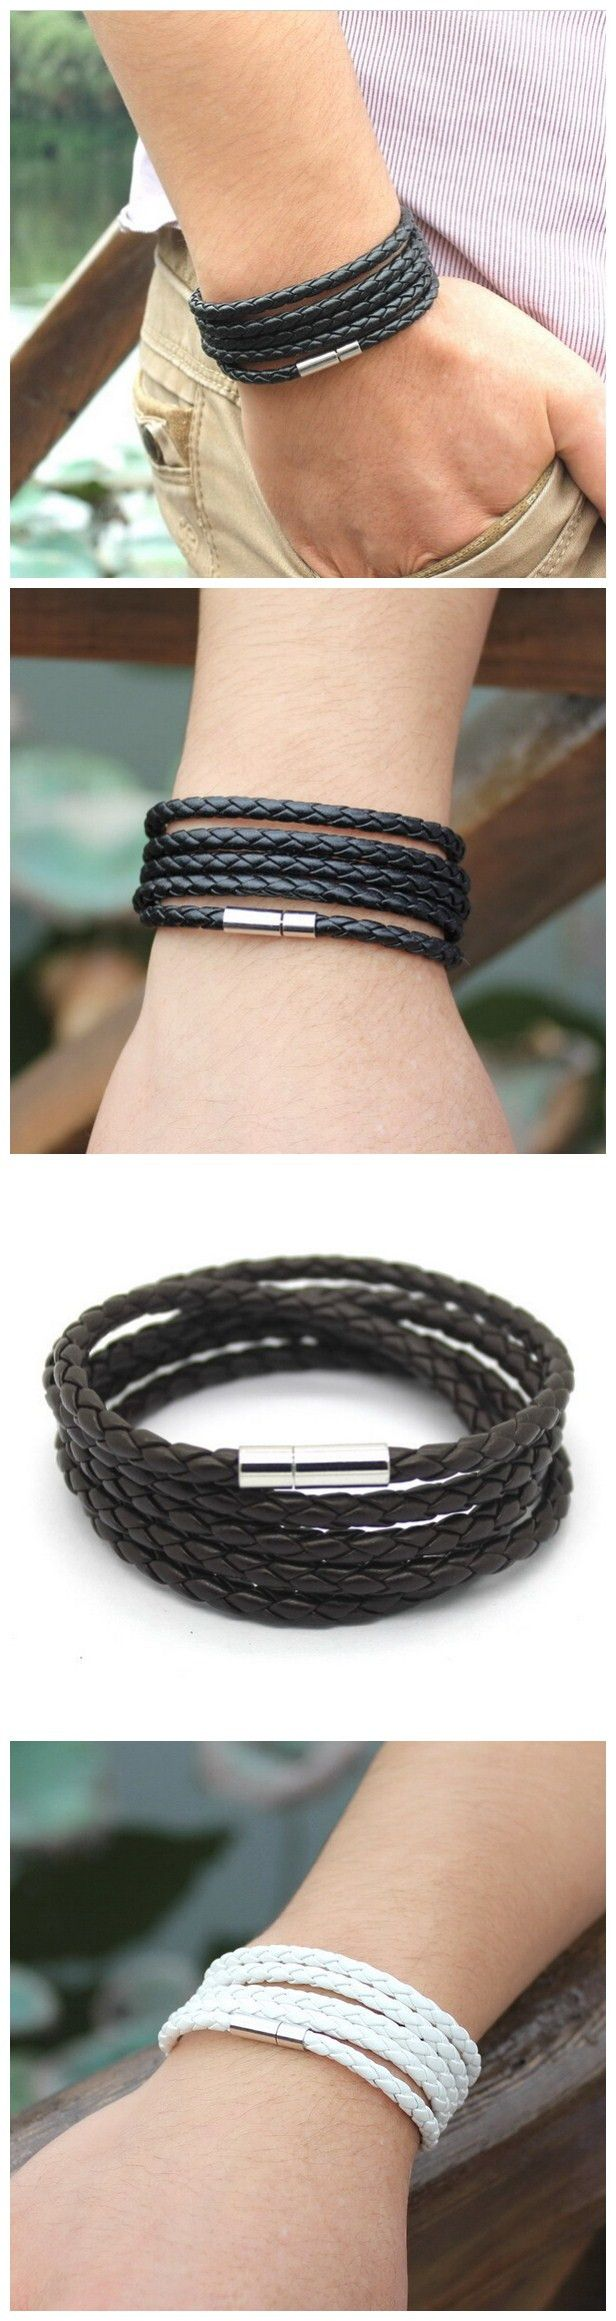 Best 25+ Jewelry For Men Ideas Only On Pinterest  Infinity, Man Jewelry  And Men's Accessories